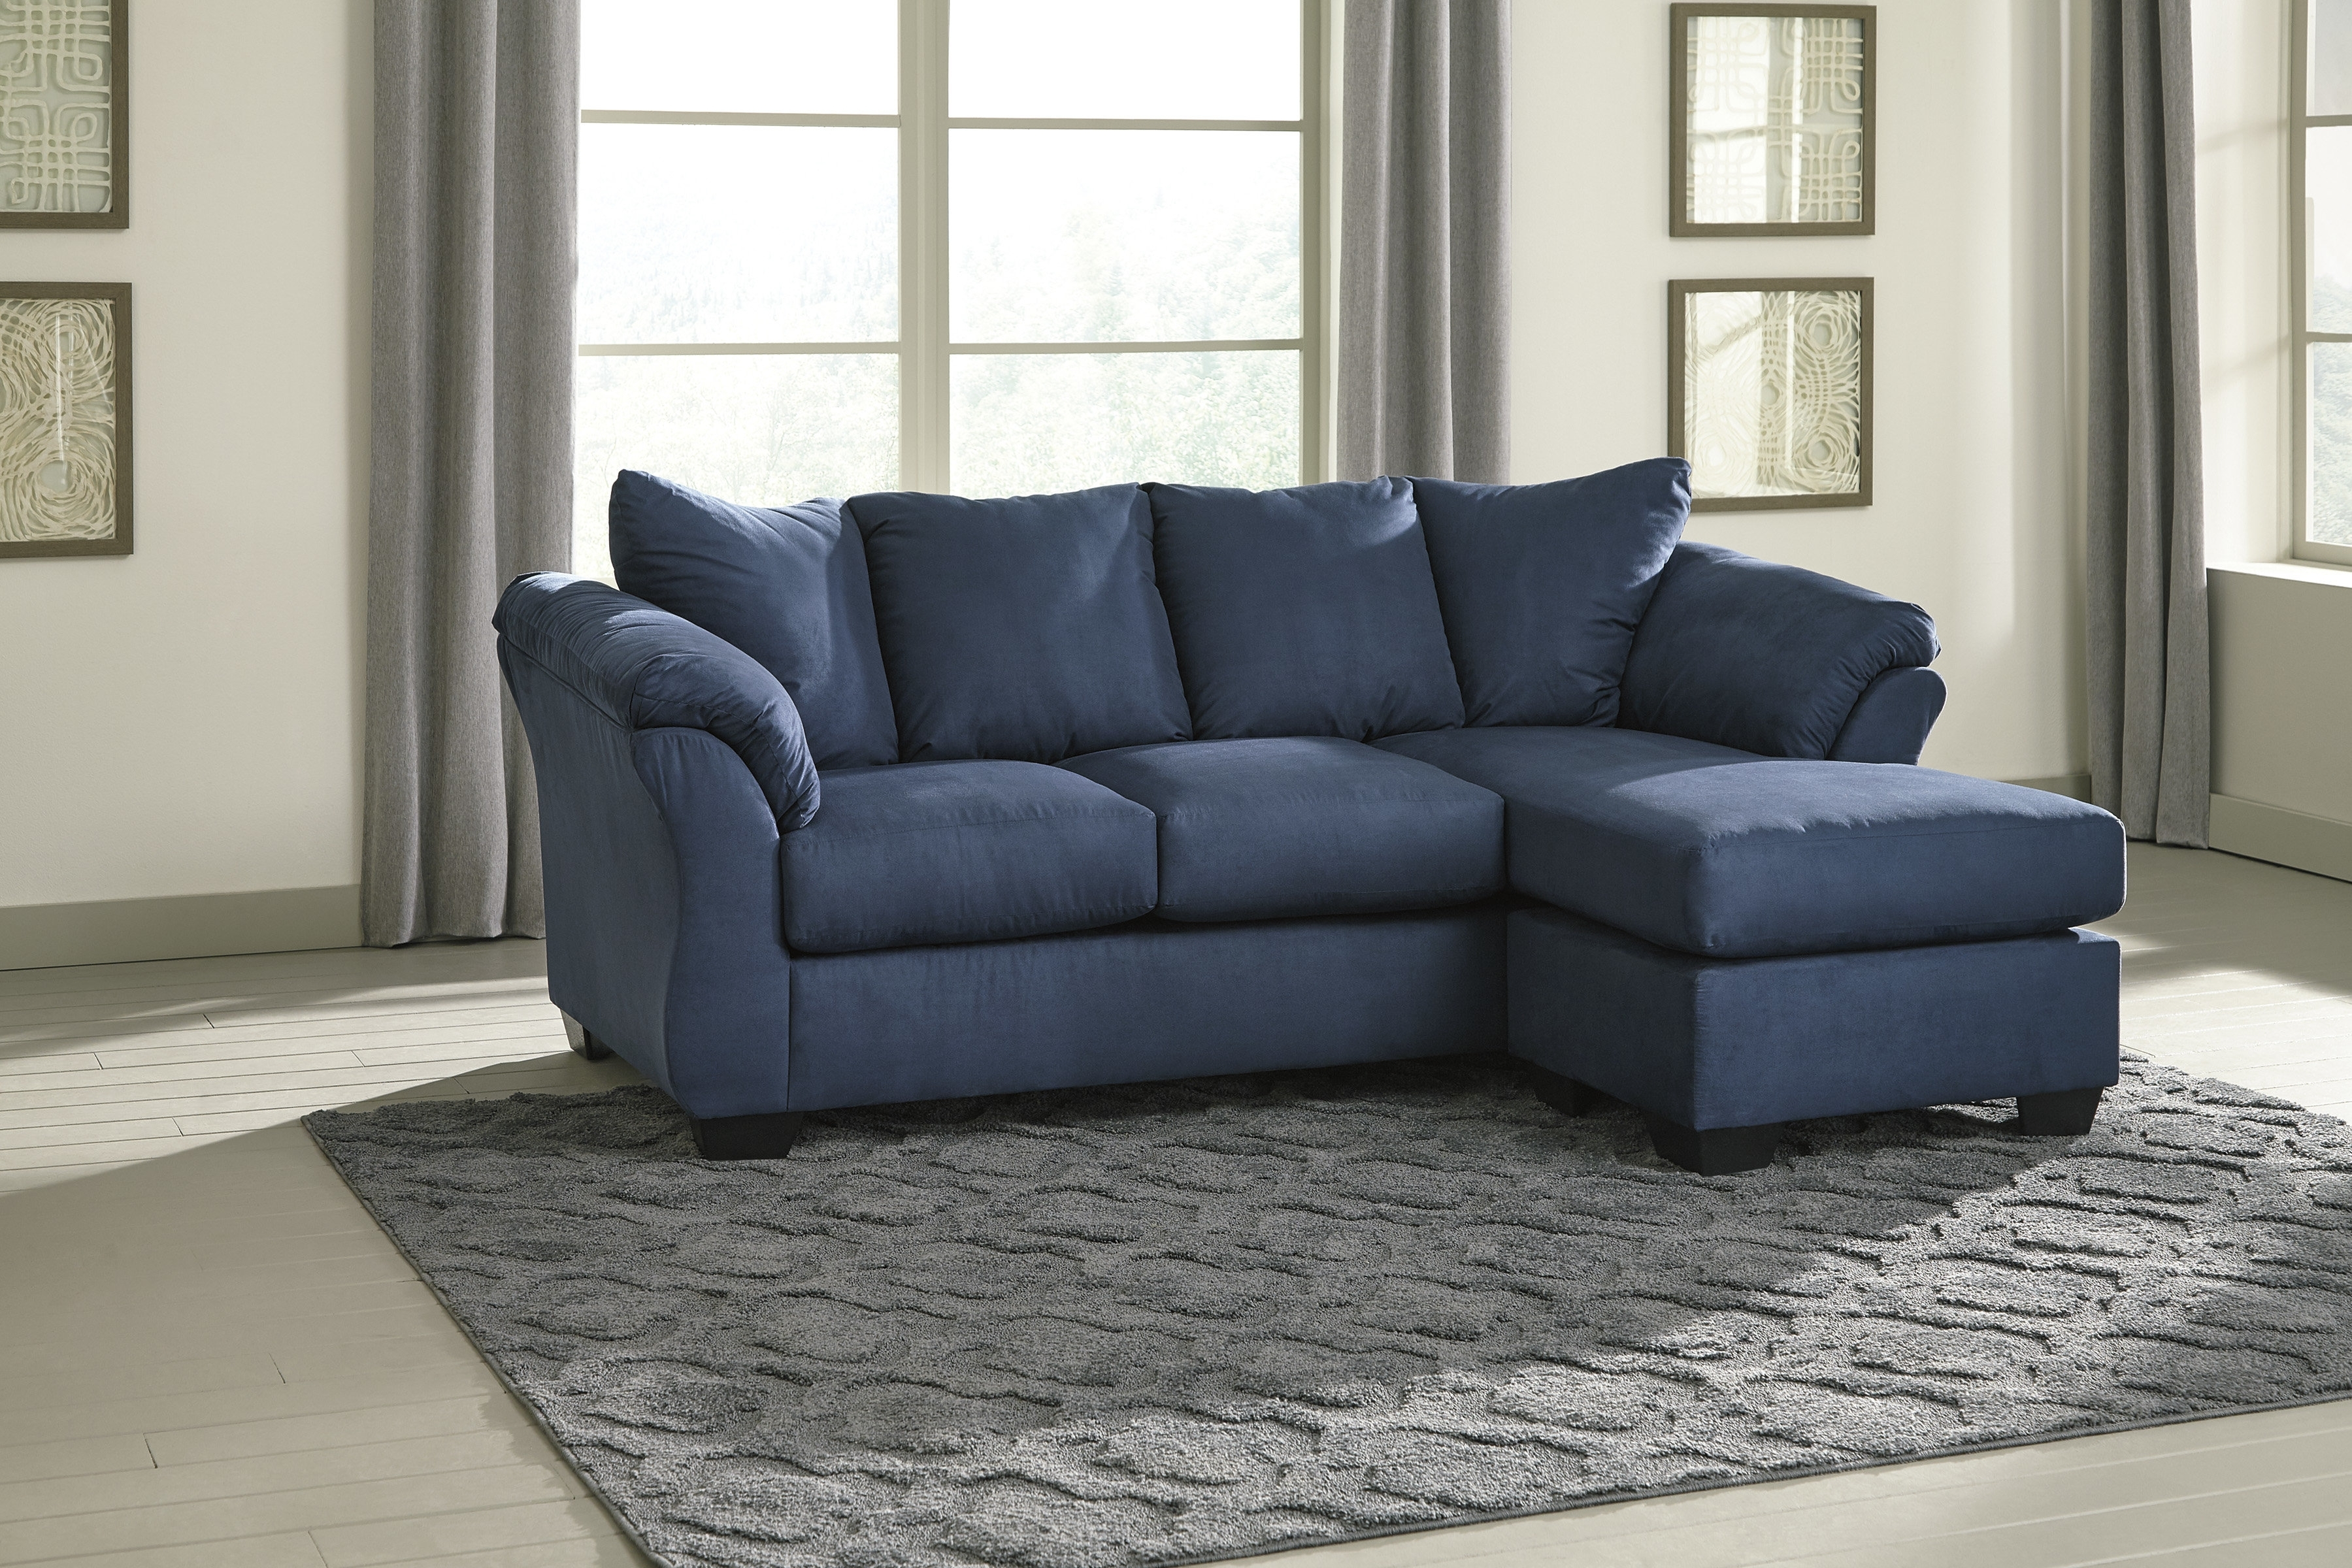 Alcott Hill Sagamore Reversible Sectional & Reviews | Wayfair throughout Lucy Dark Grey 2 Piece Sleeper Sectionals With Raf Chaise (Image 1 of 30)